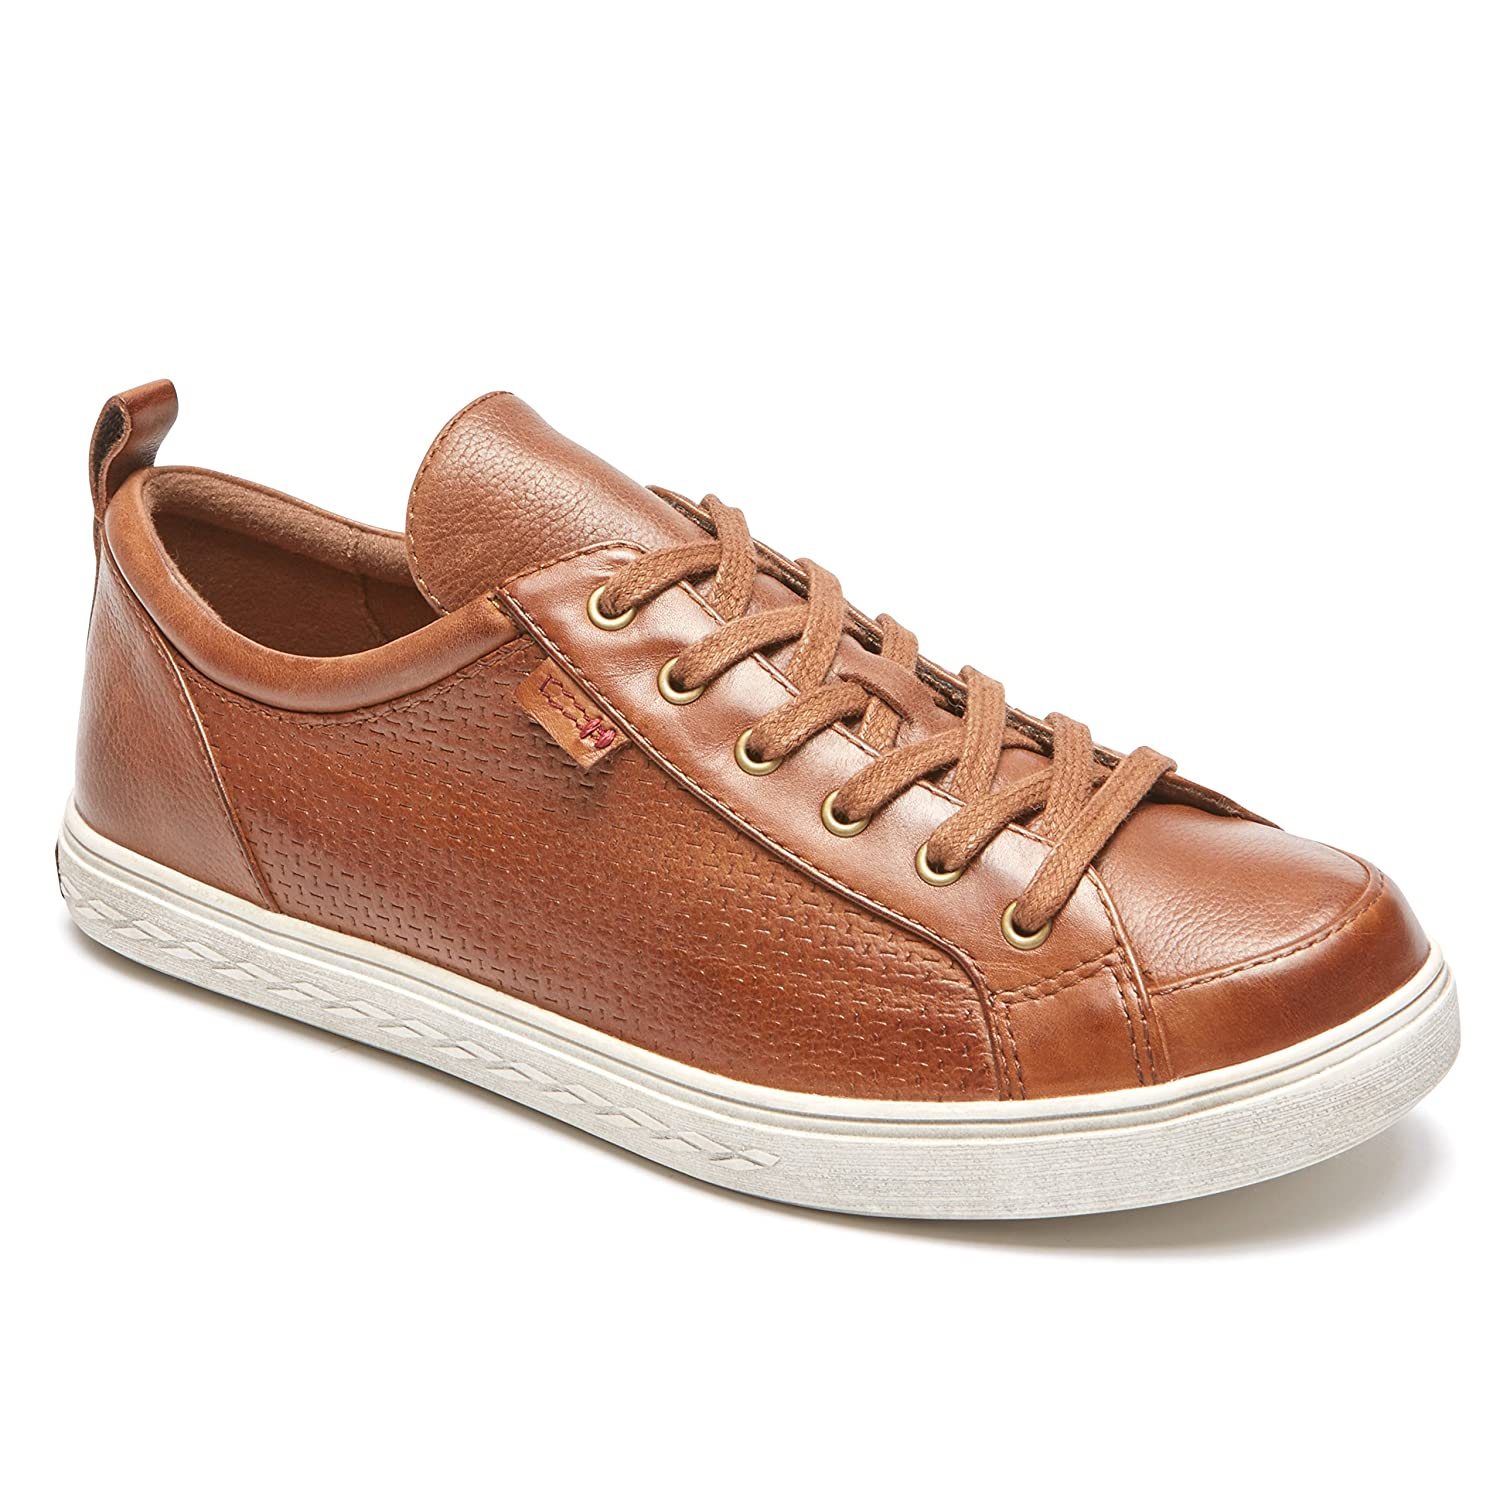 Cobb Hill Women's Willa Lace to Toe Sneaker B01MZIS4YR 5.5 W US|Almond Leather